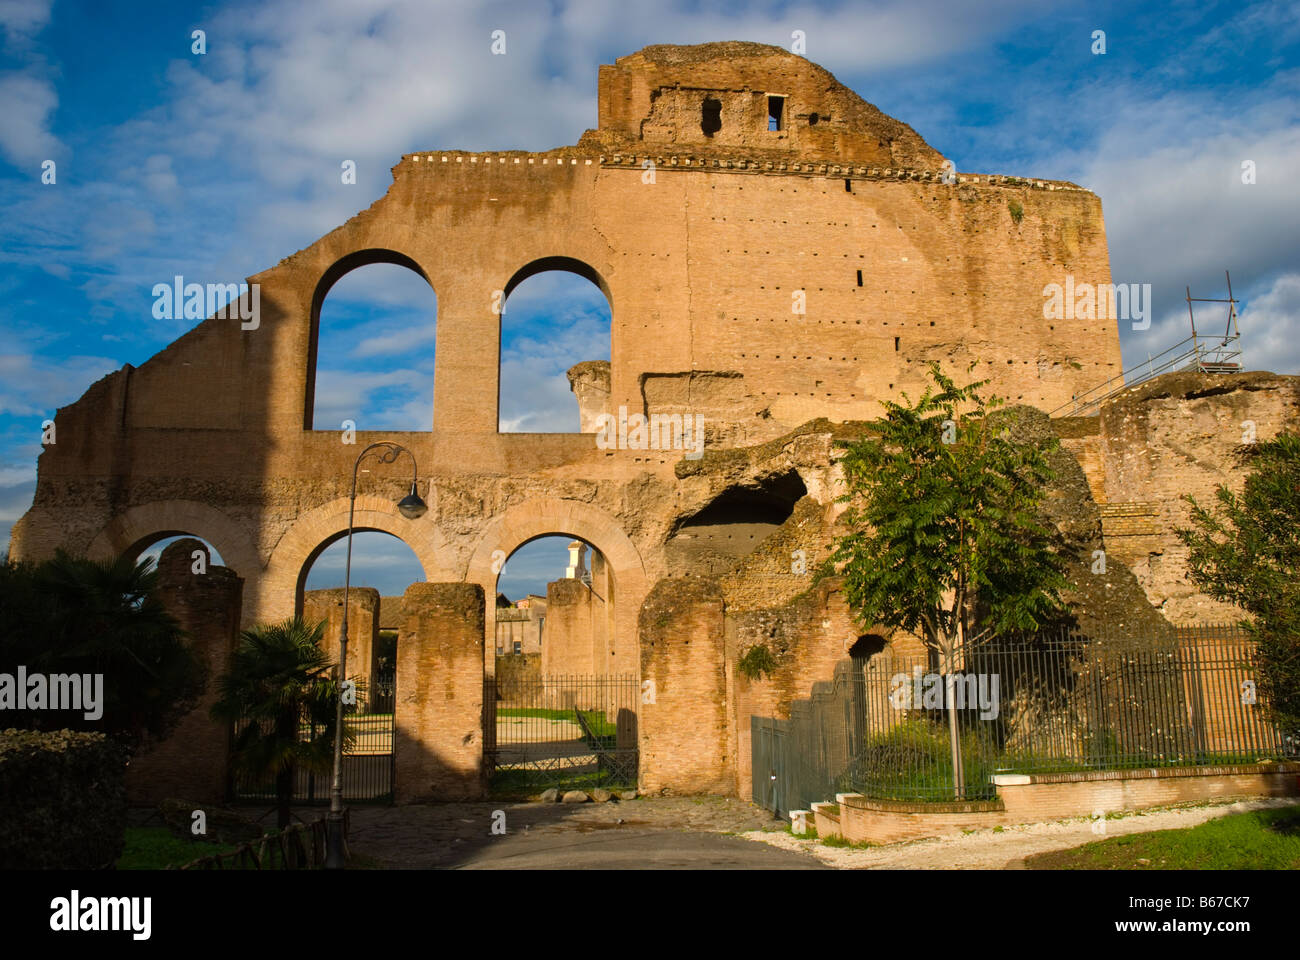 Ruins at Foro Romano the Roman Forum in Rome Italy Europe - Stock Image